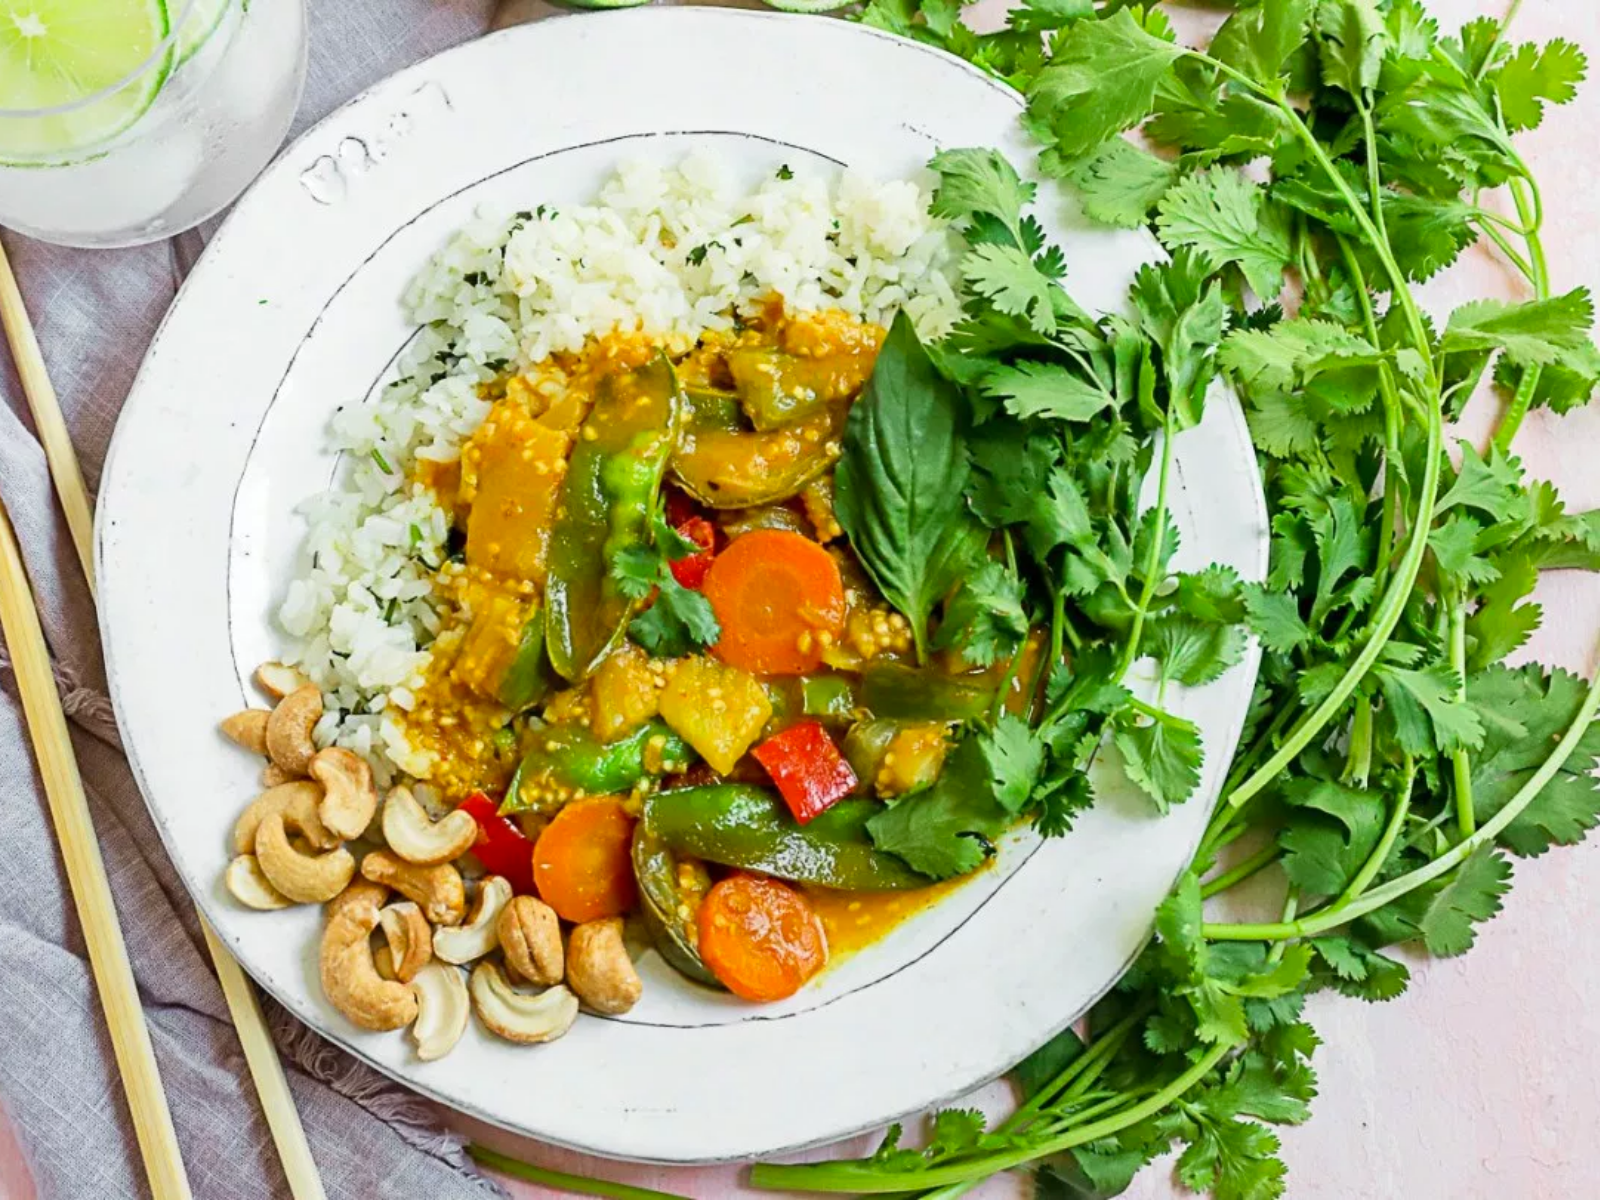 Thai Pineapple Yellow Curry With Vegetables